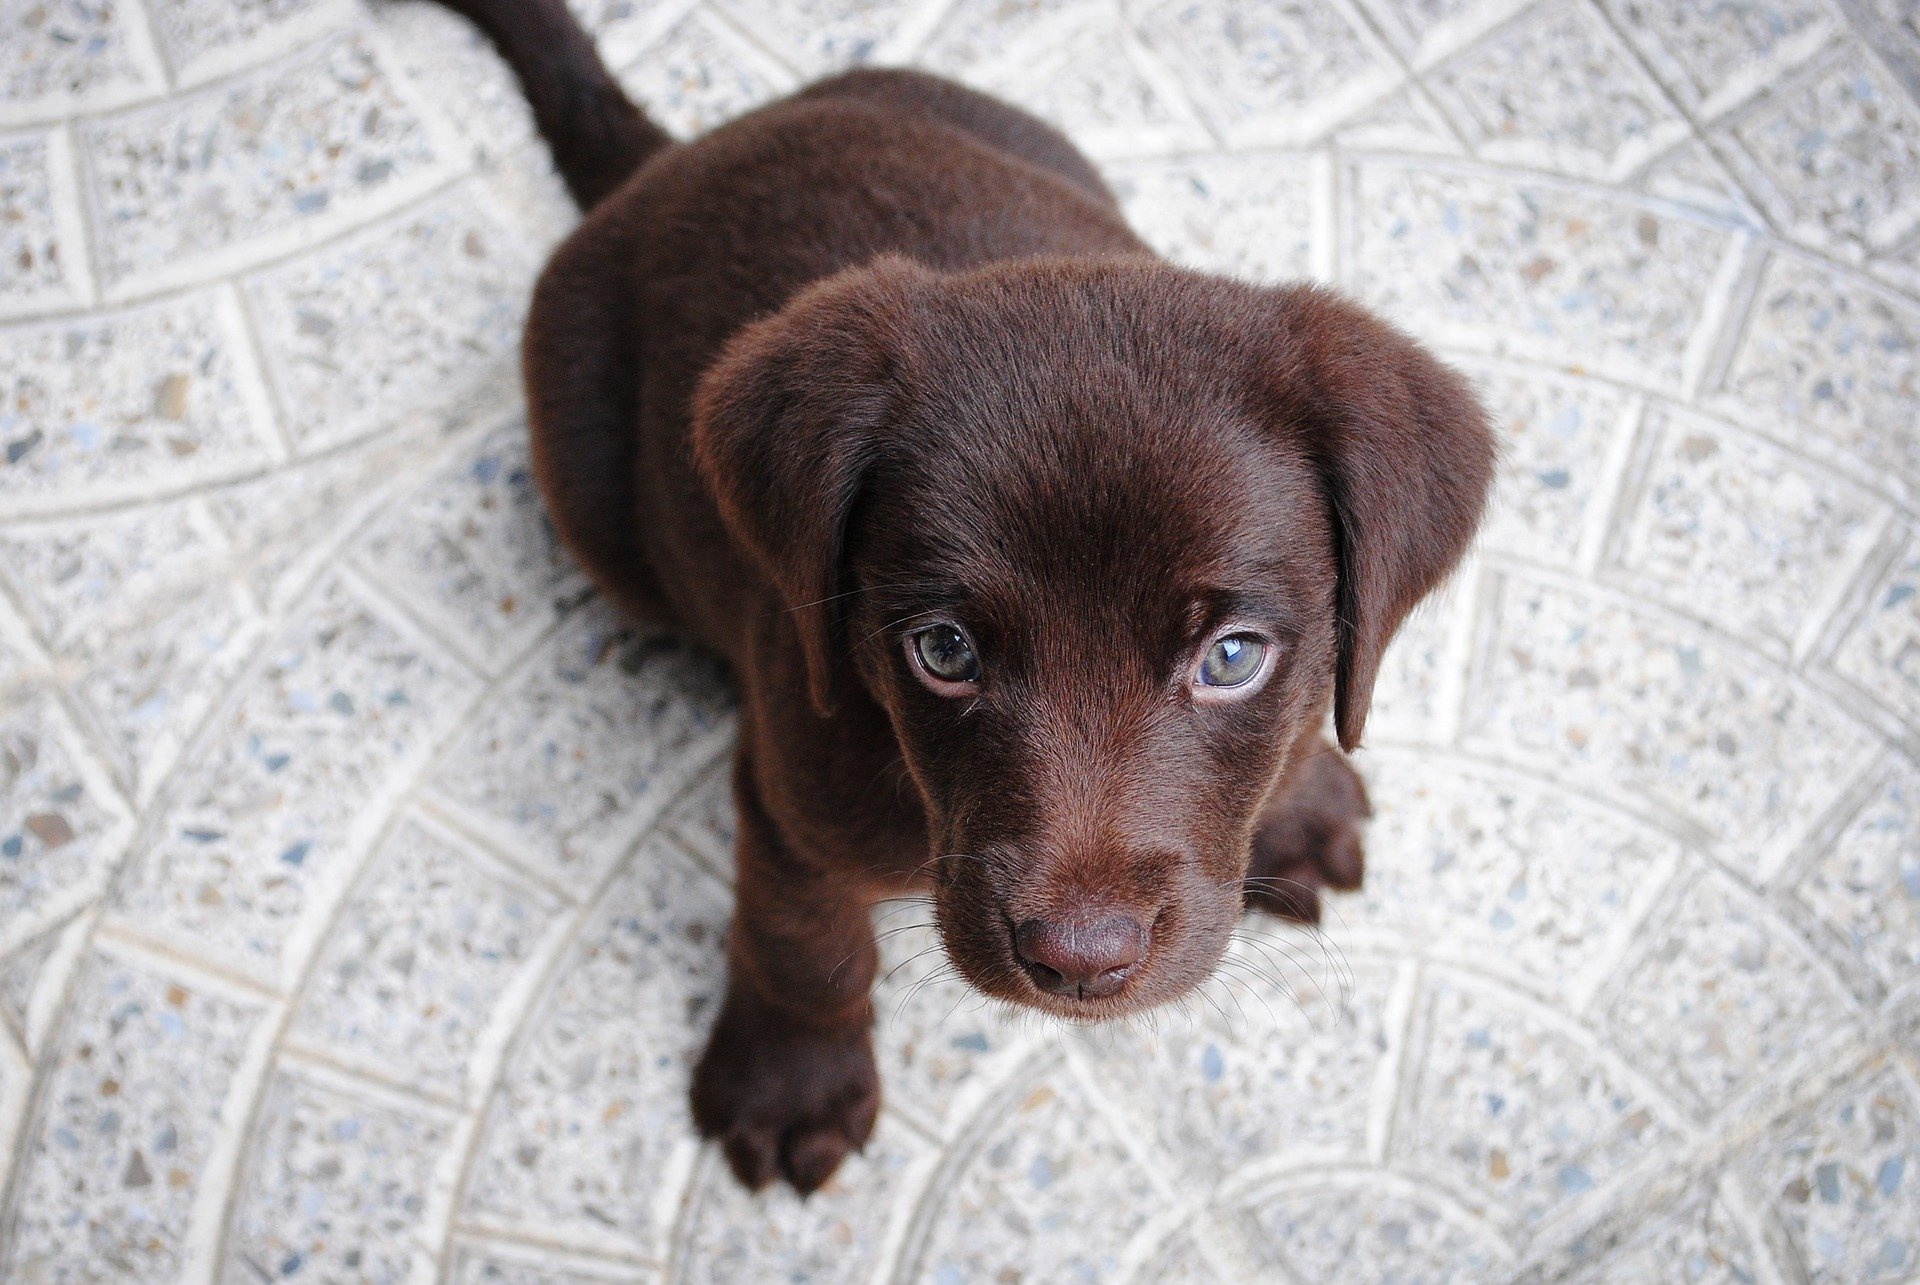 How Much Should a Parent Take Care of Child's Puppy?